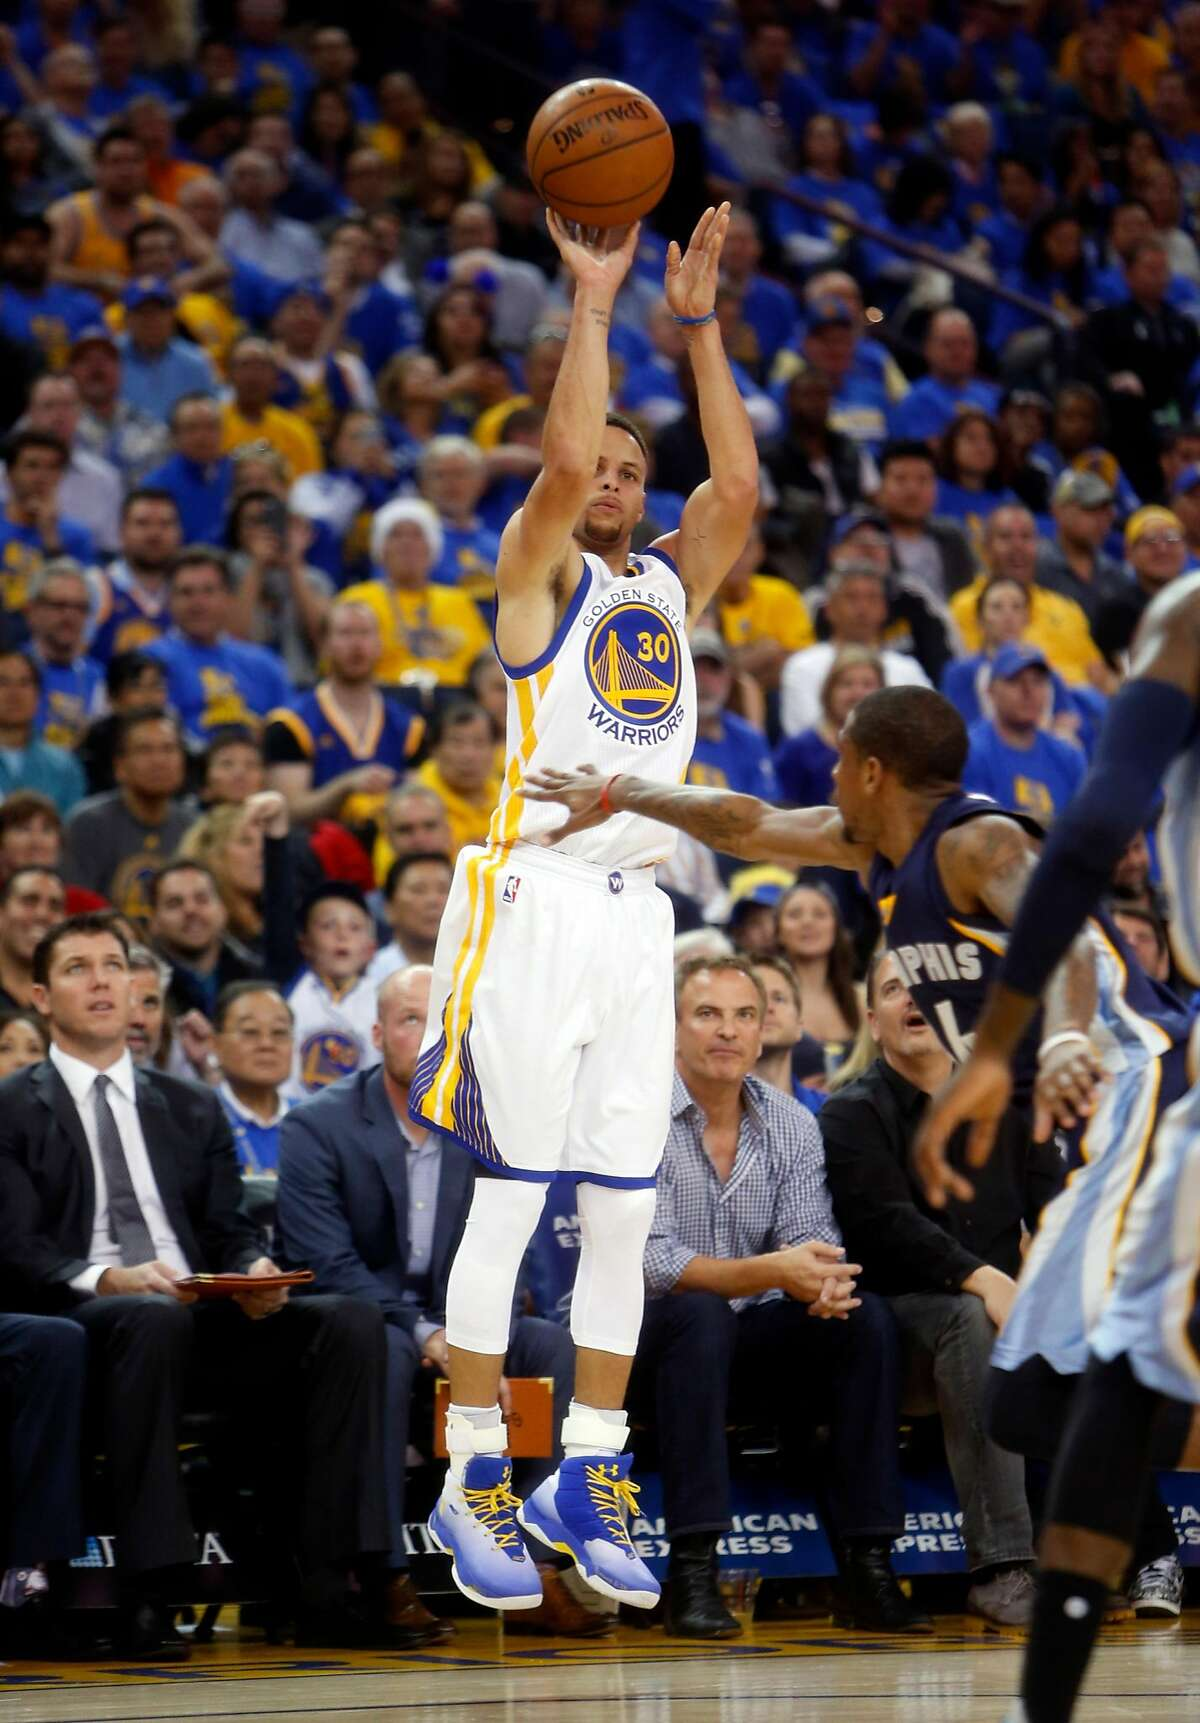 Golden State Warriors' Stephen Curry hits 3-pointer in 1st quarter against Memphis Grizzlies during NBA game at Oracle Arena in Oakland, Calif., on Wednesday, April 13, 2016.